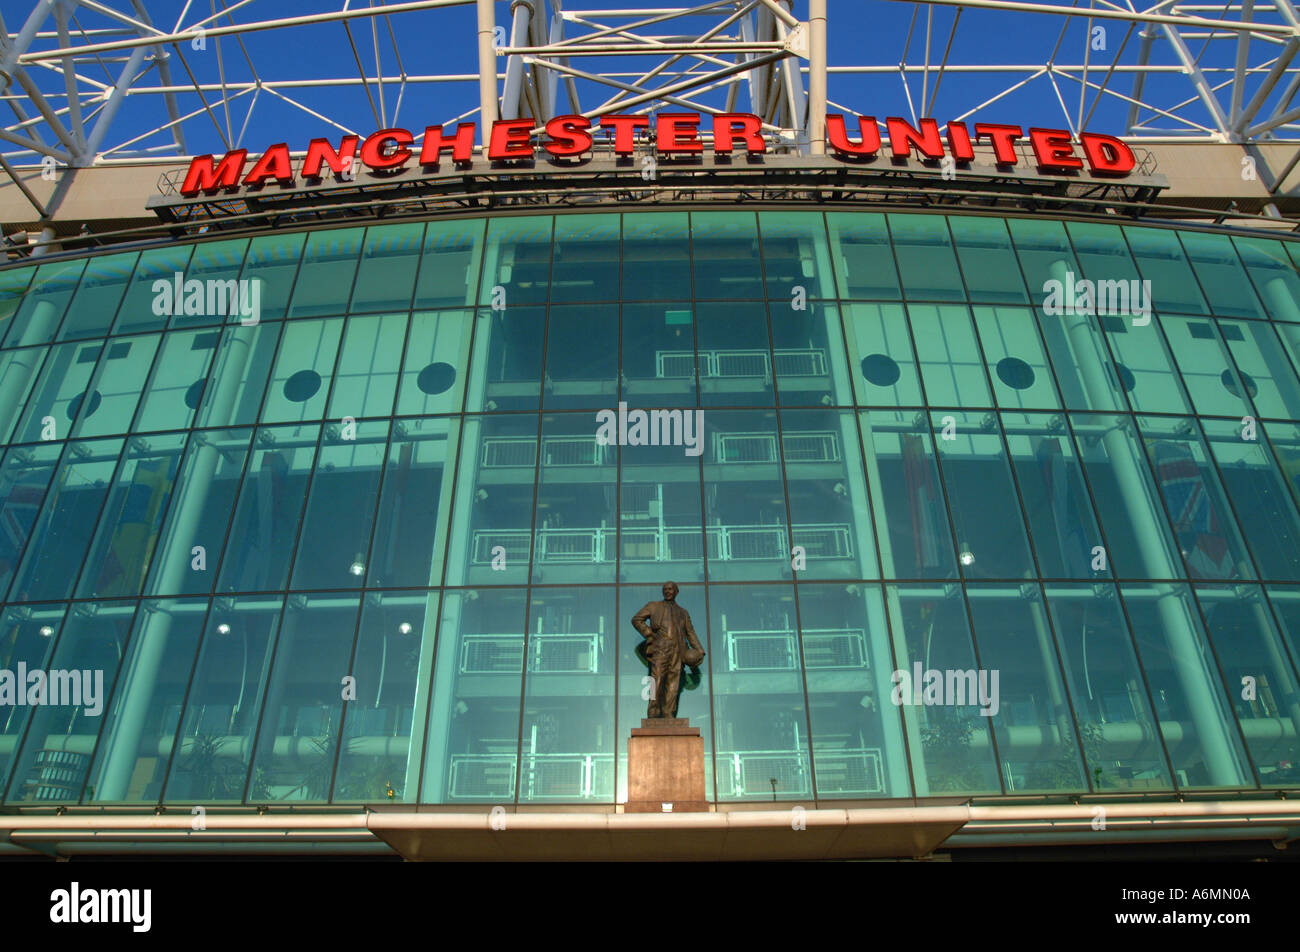 Manchester United Football Ground High Resolution Stock Photography And Images Alamy